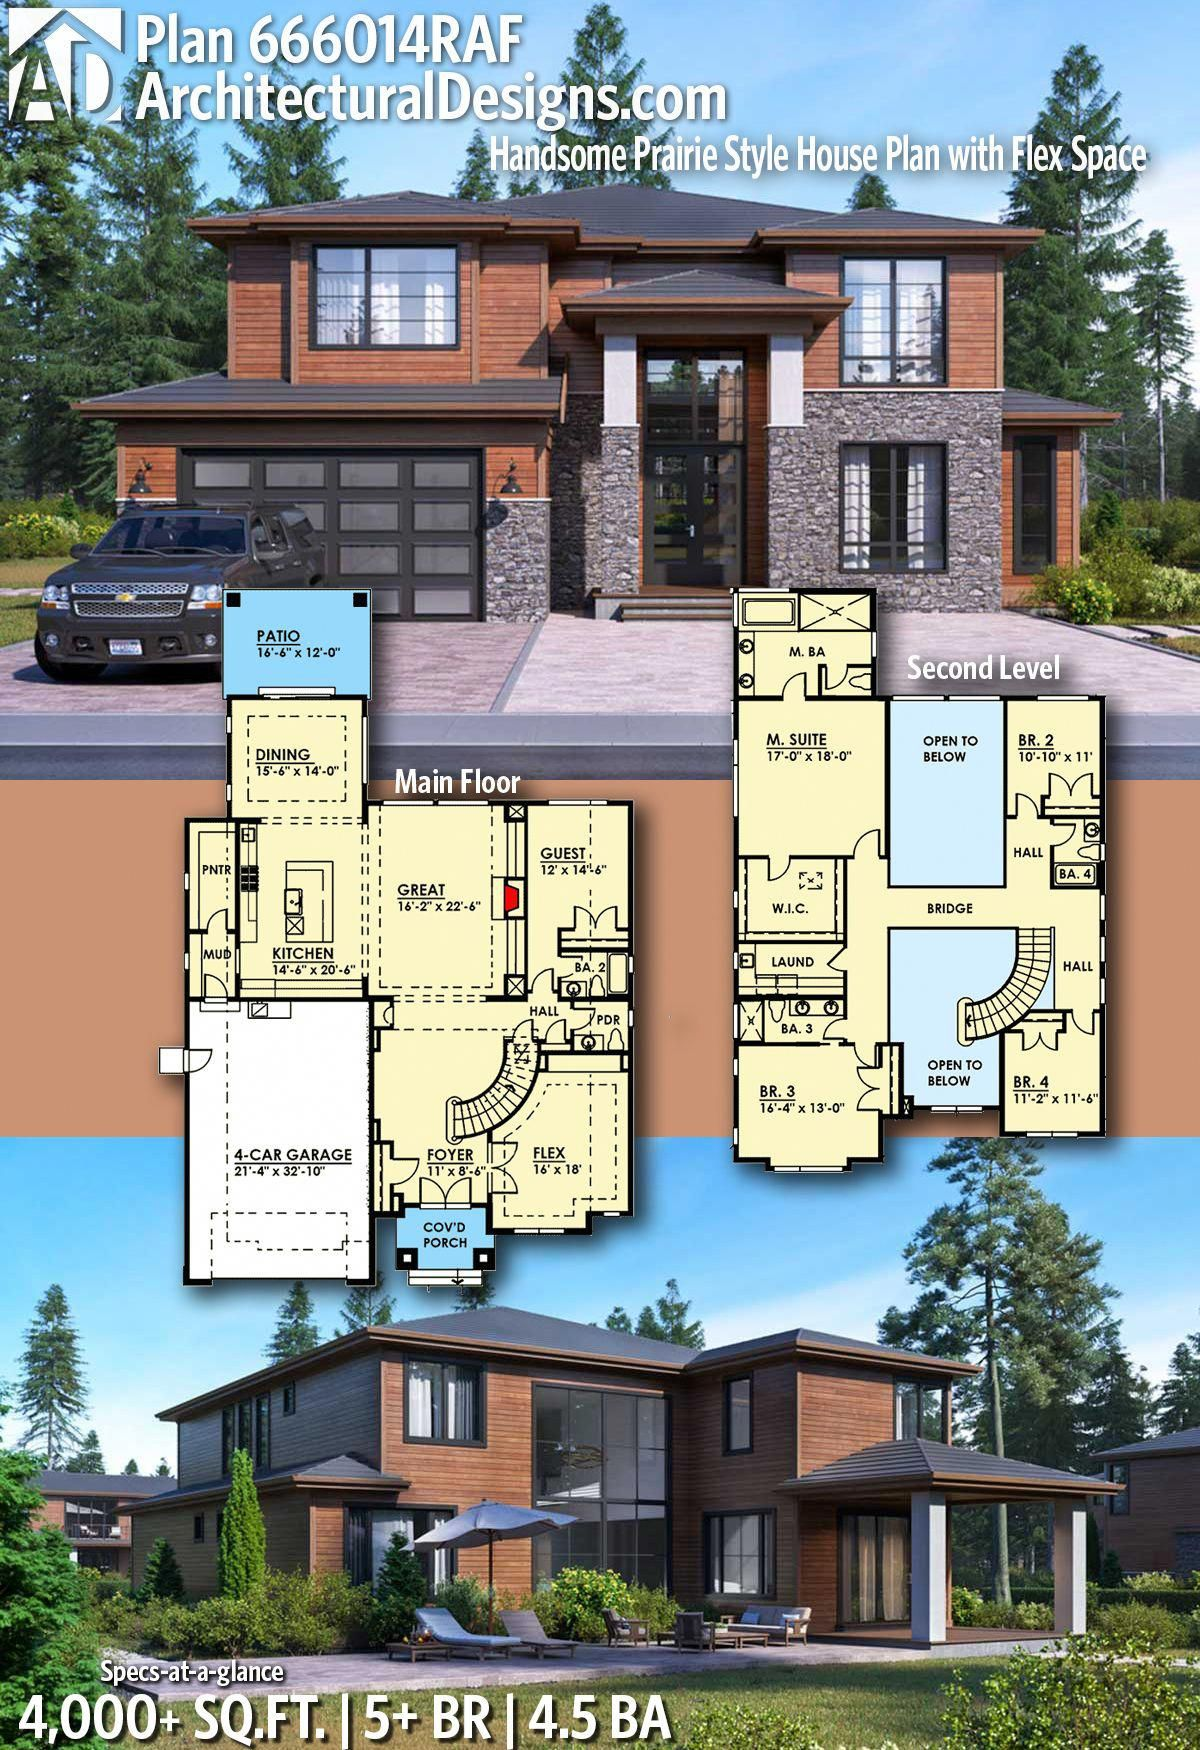 Architectural Designs Modern House Plan 666014raf 5 Beds 4 5 Baths 4 000 Sq Ft Ready When You Prairie Style Houses Sims House Plans Dream House Plans